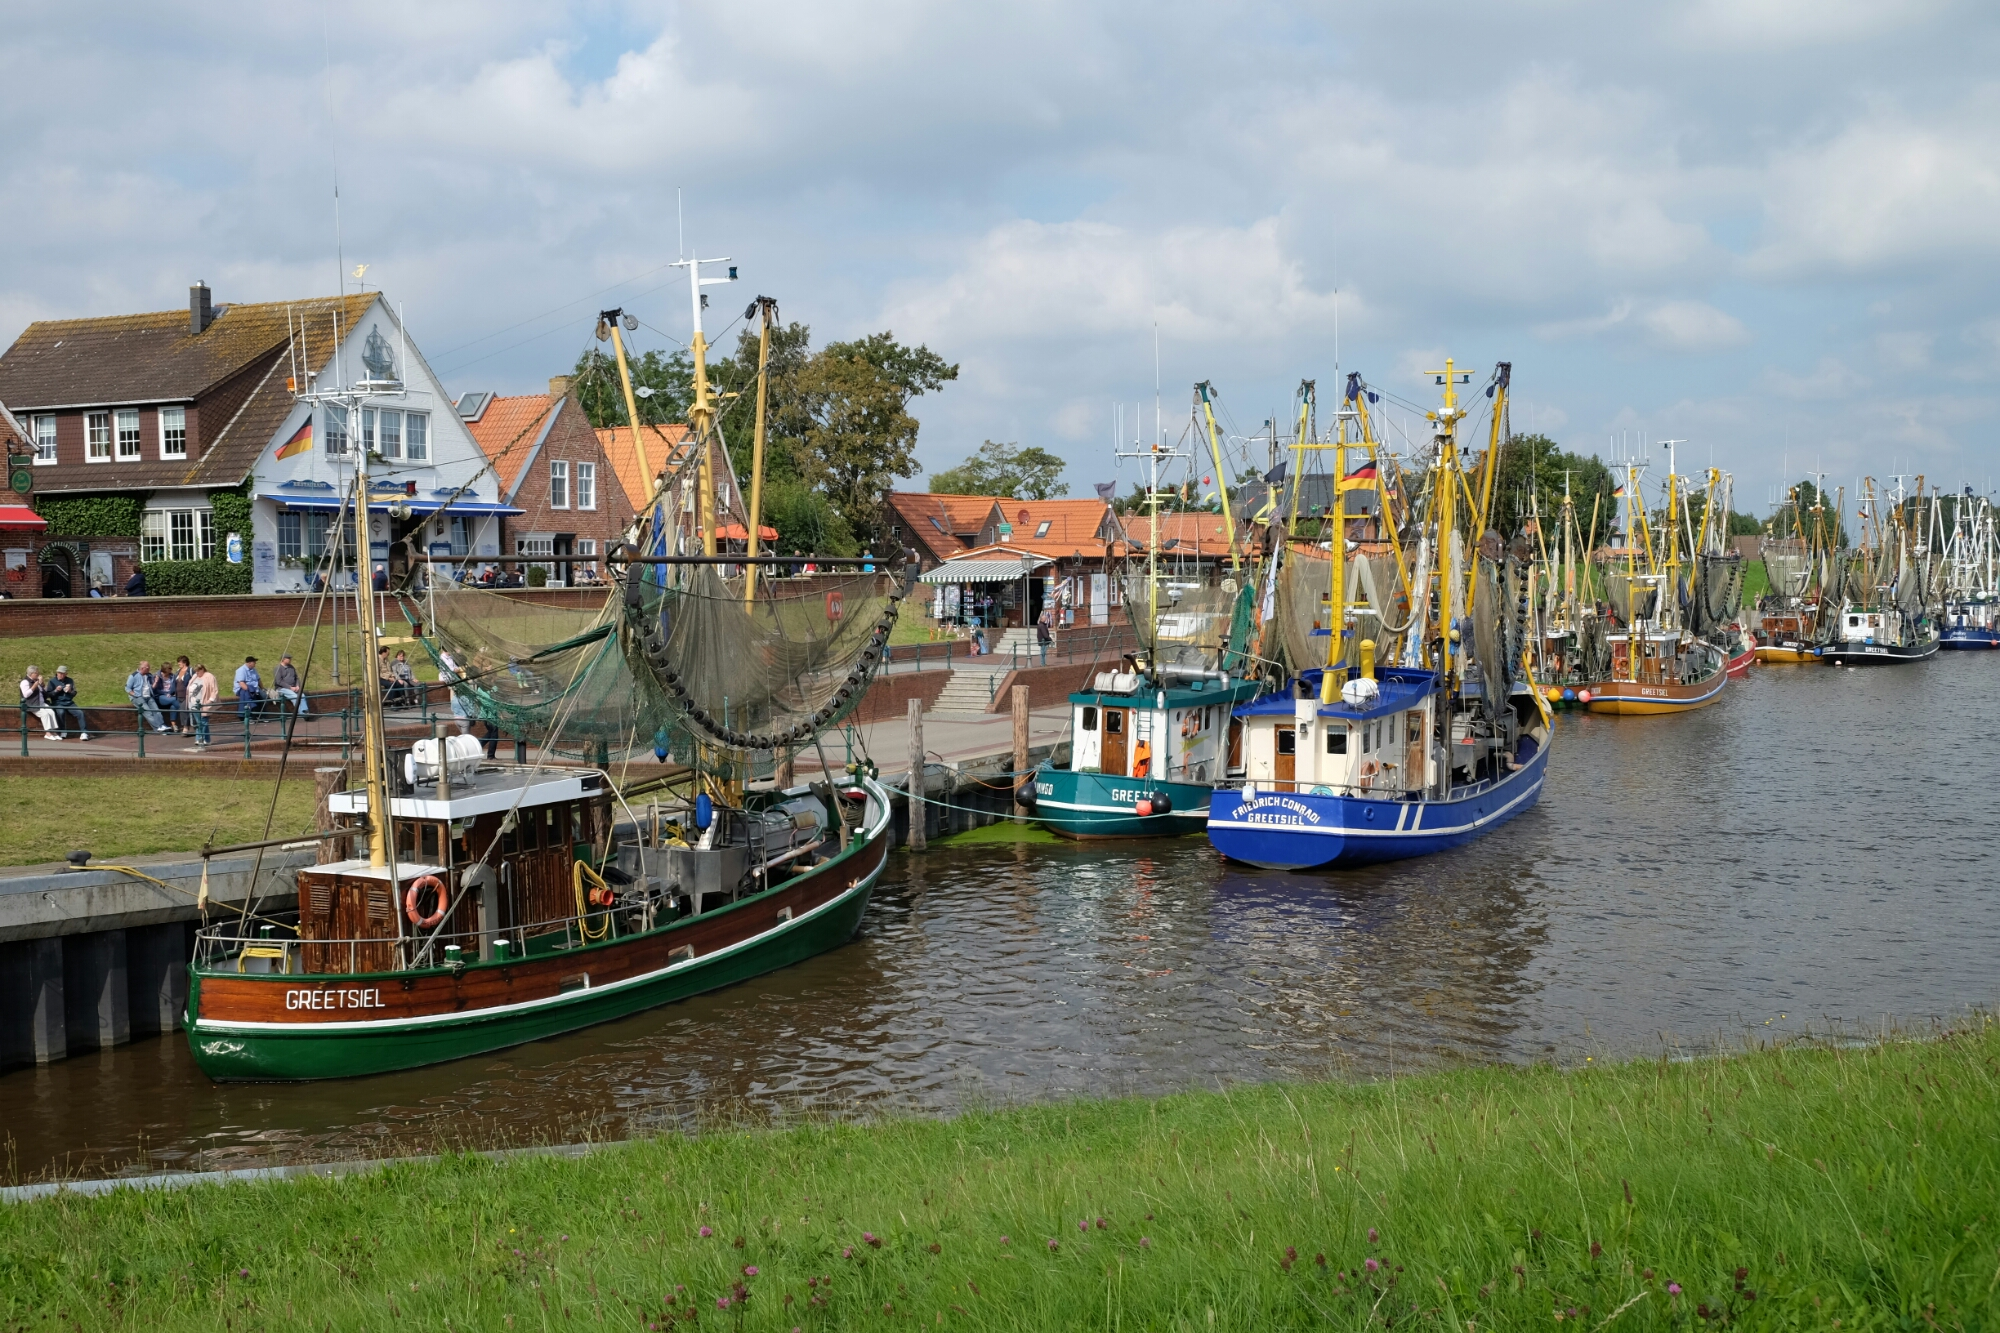 Krabbenkutter in Greetsiel